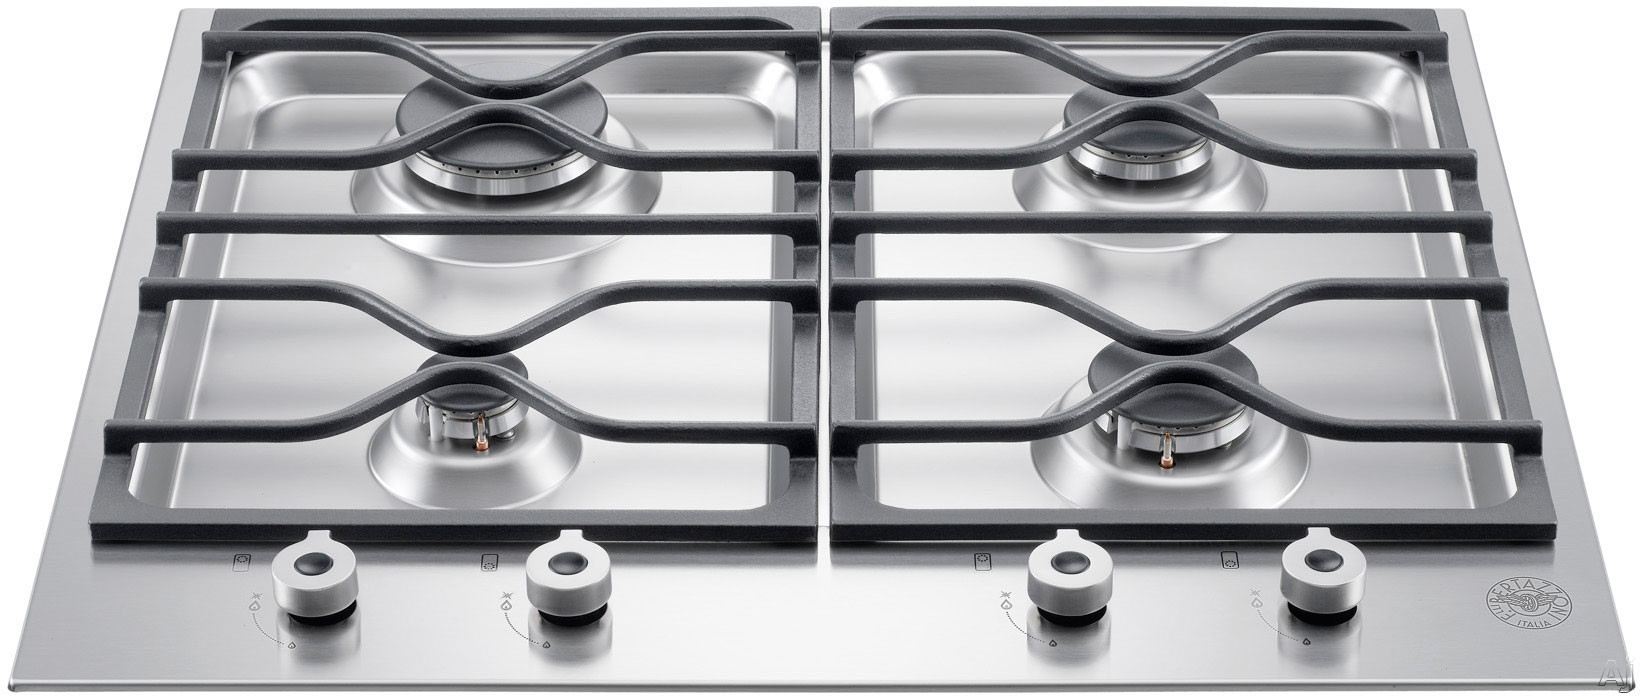 Bertazzoni Professional Series PM24400XLP 24 Inch Gas Cooktop with 4 Sealed Aluminum Burners, Cast Iron Continuous Grates, One Hand Ignition and Front-Mounted Solid Metal Knobs: Liquid Propane